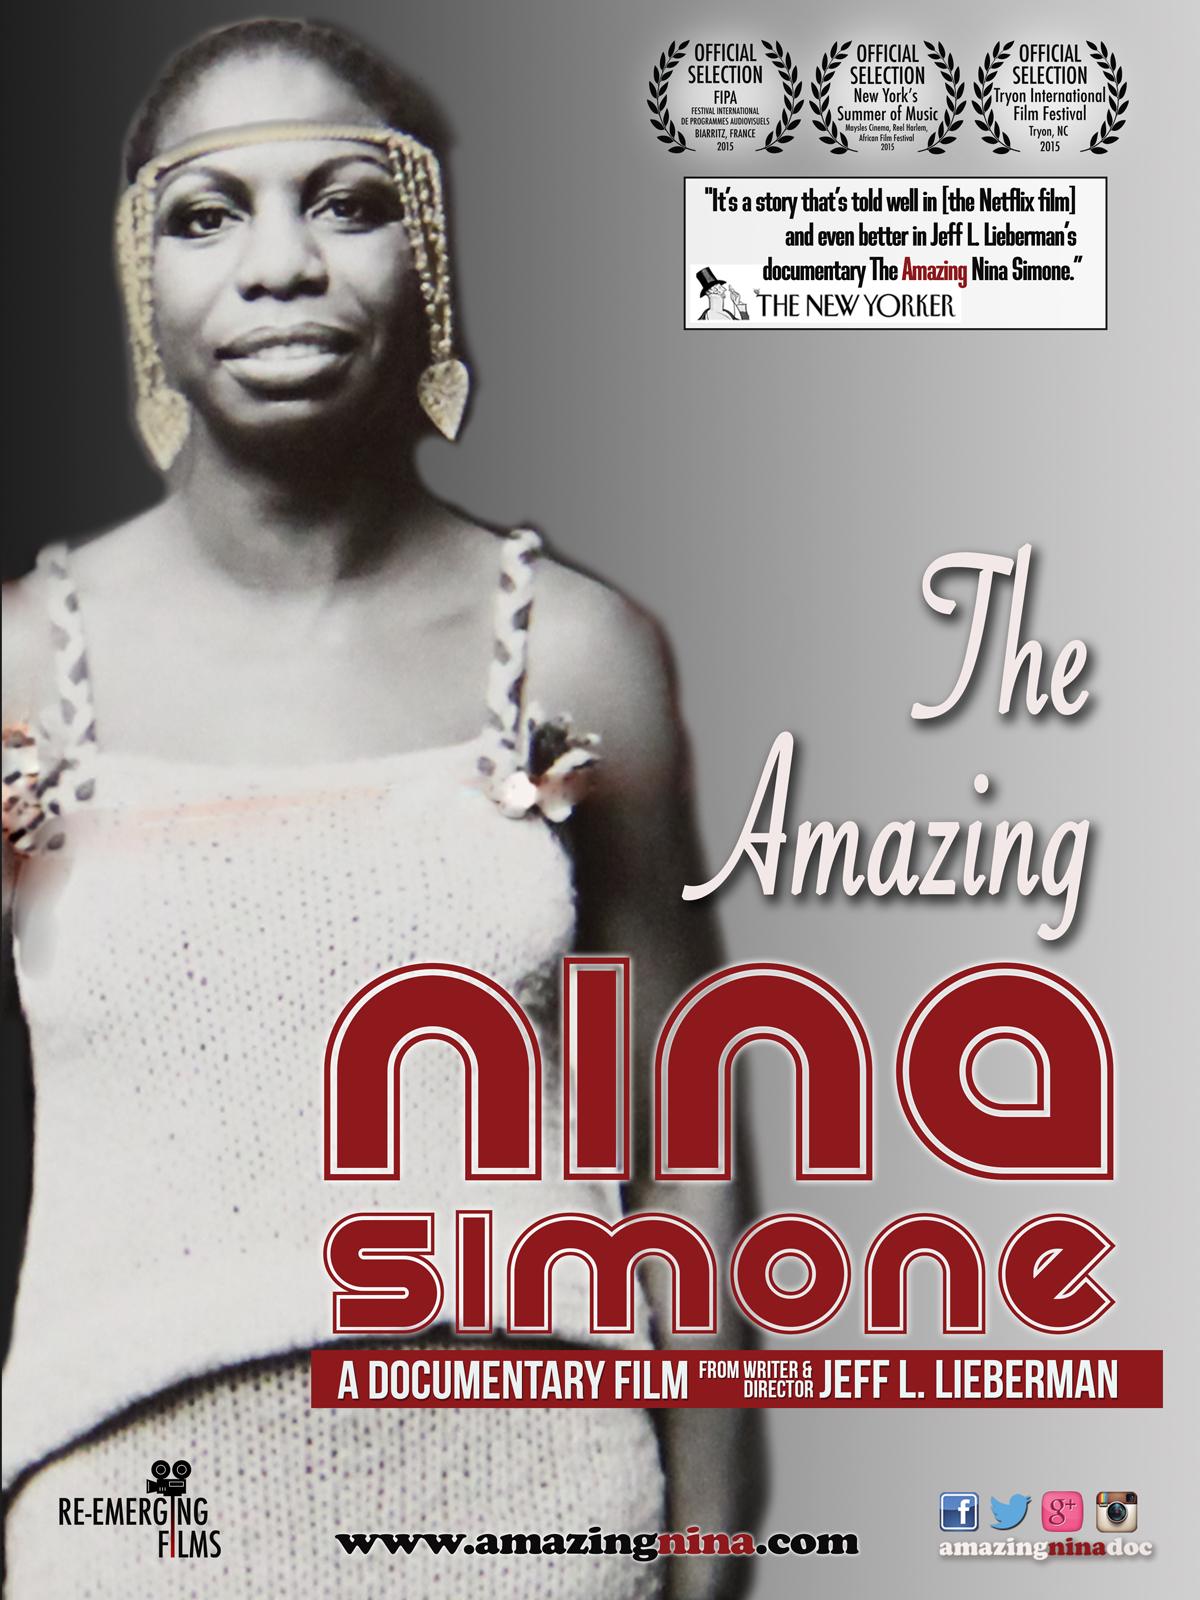 cover image, The Amazing Nina Simone